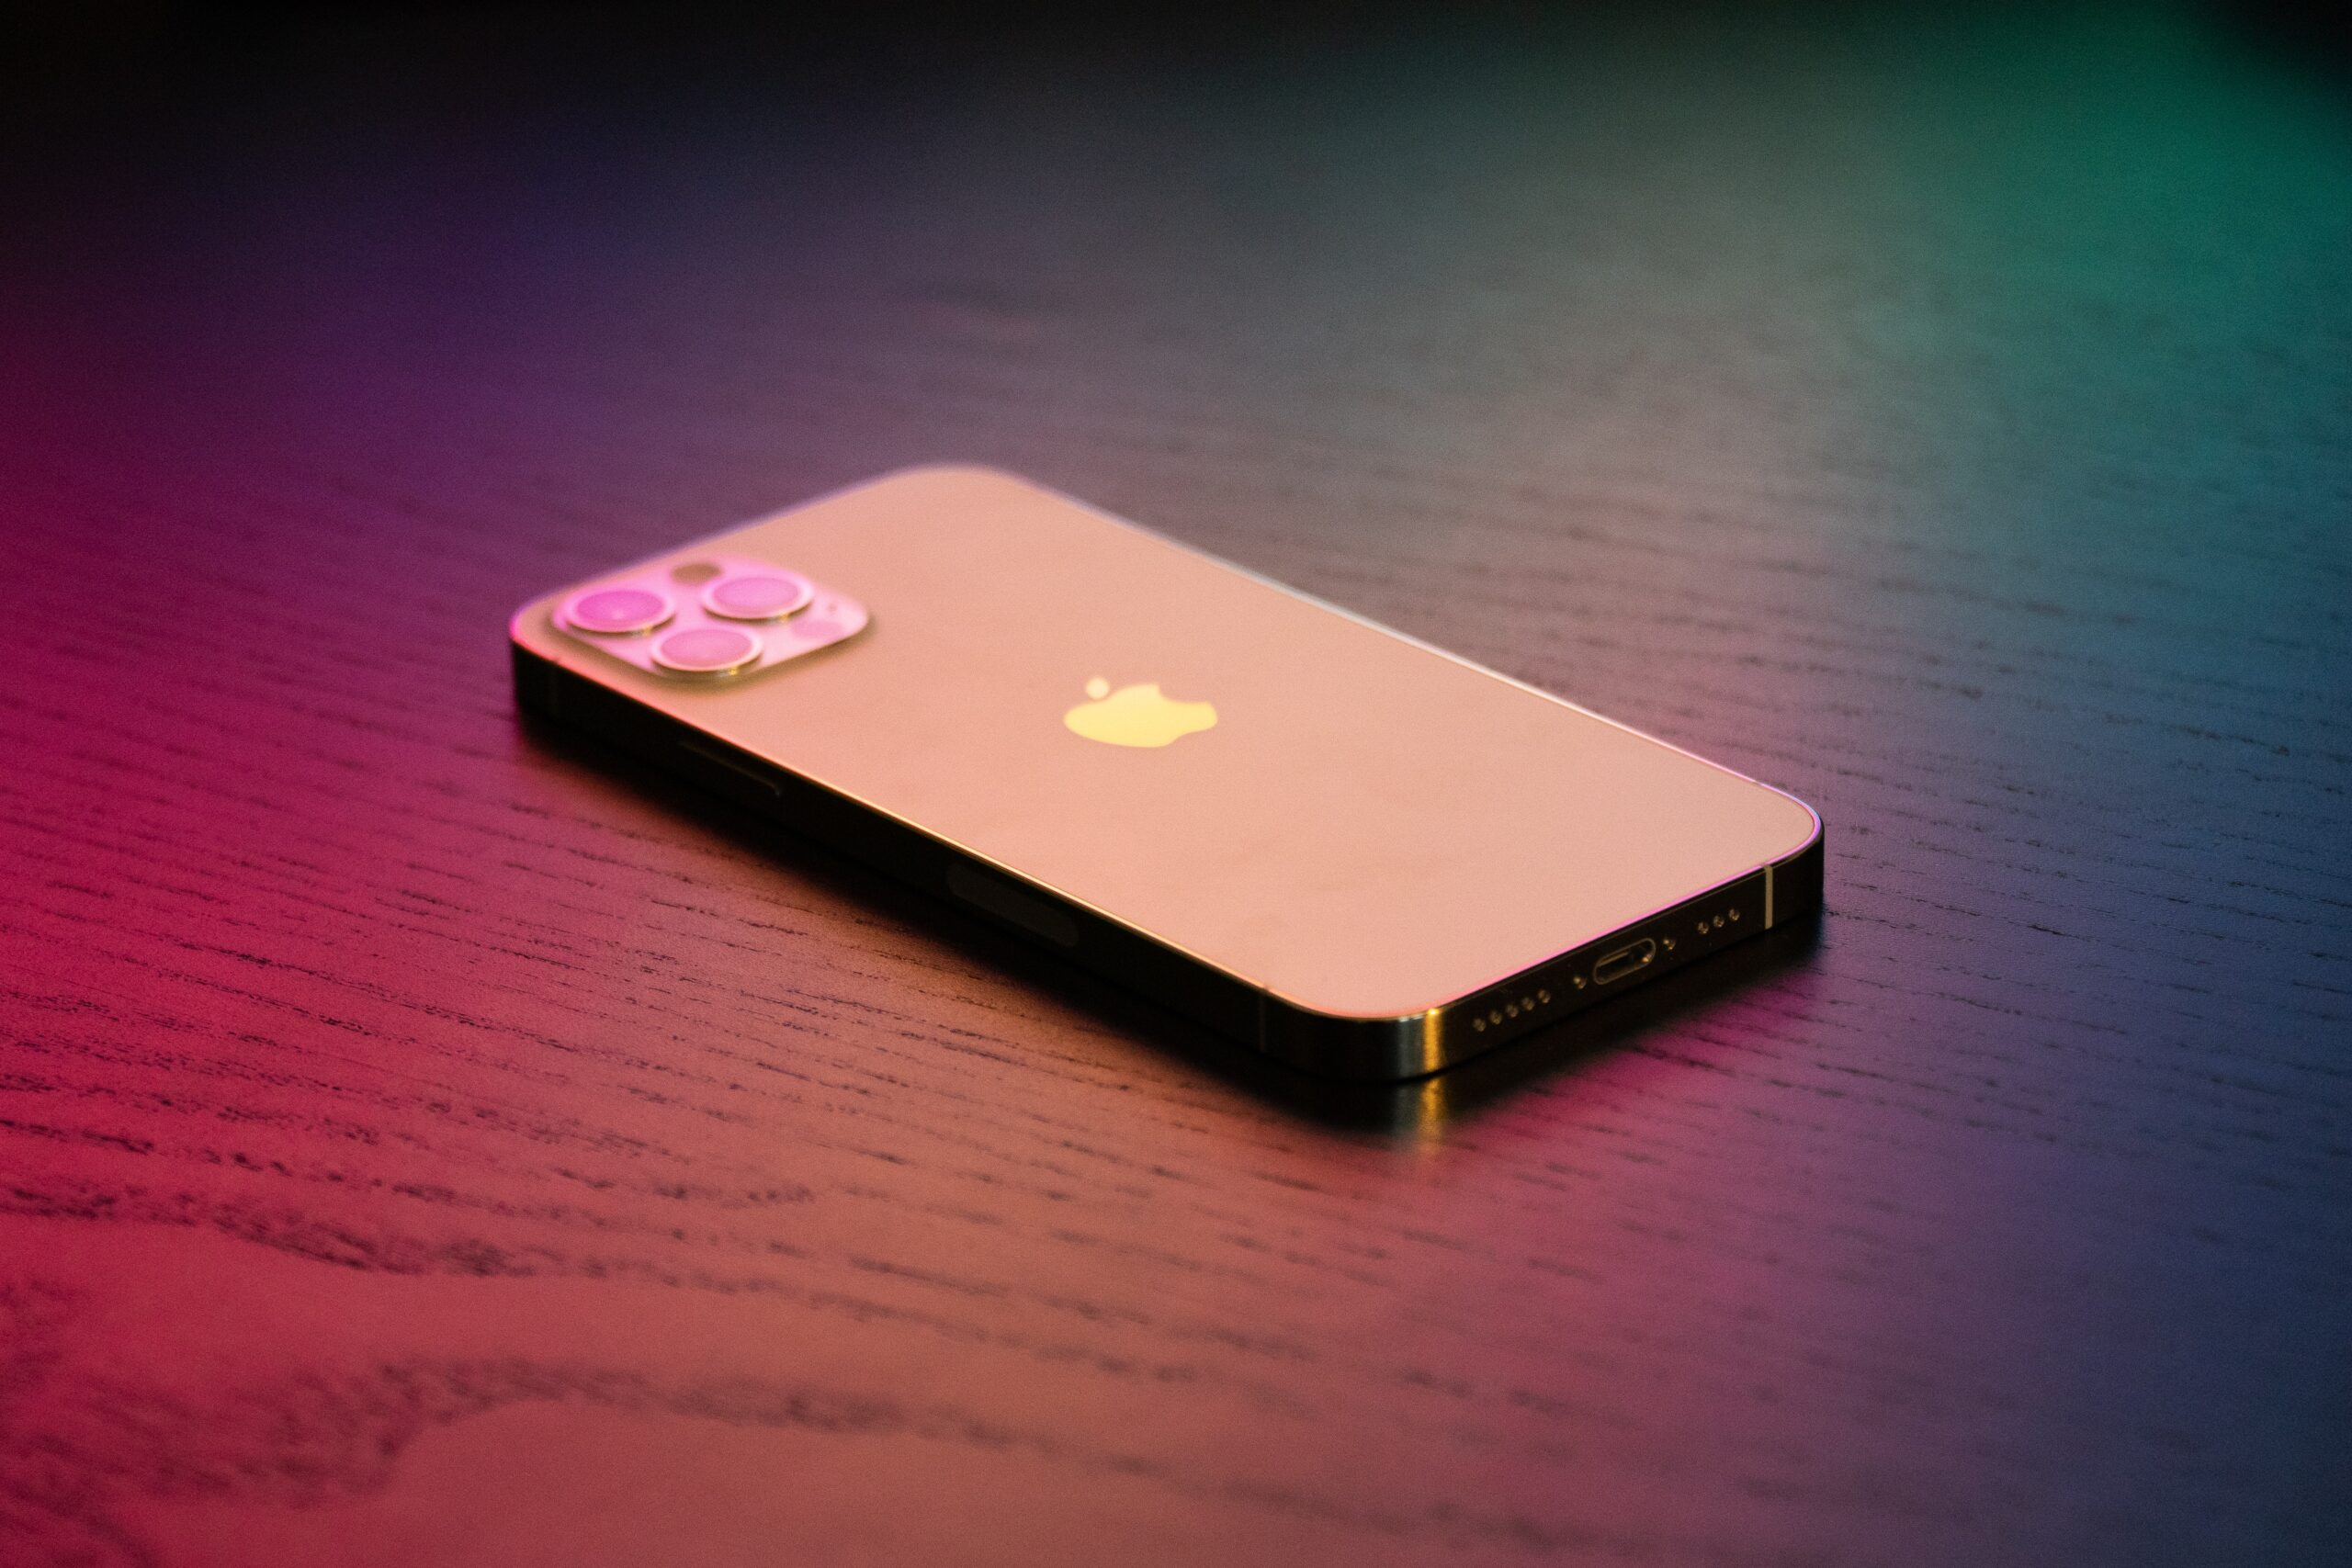 iPhone 12 scaled